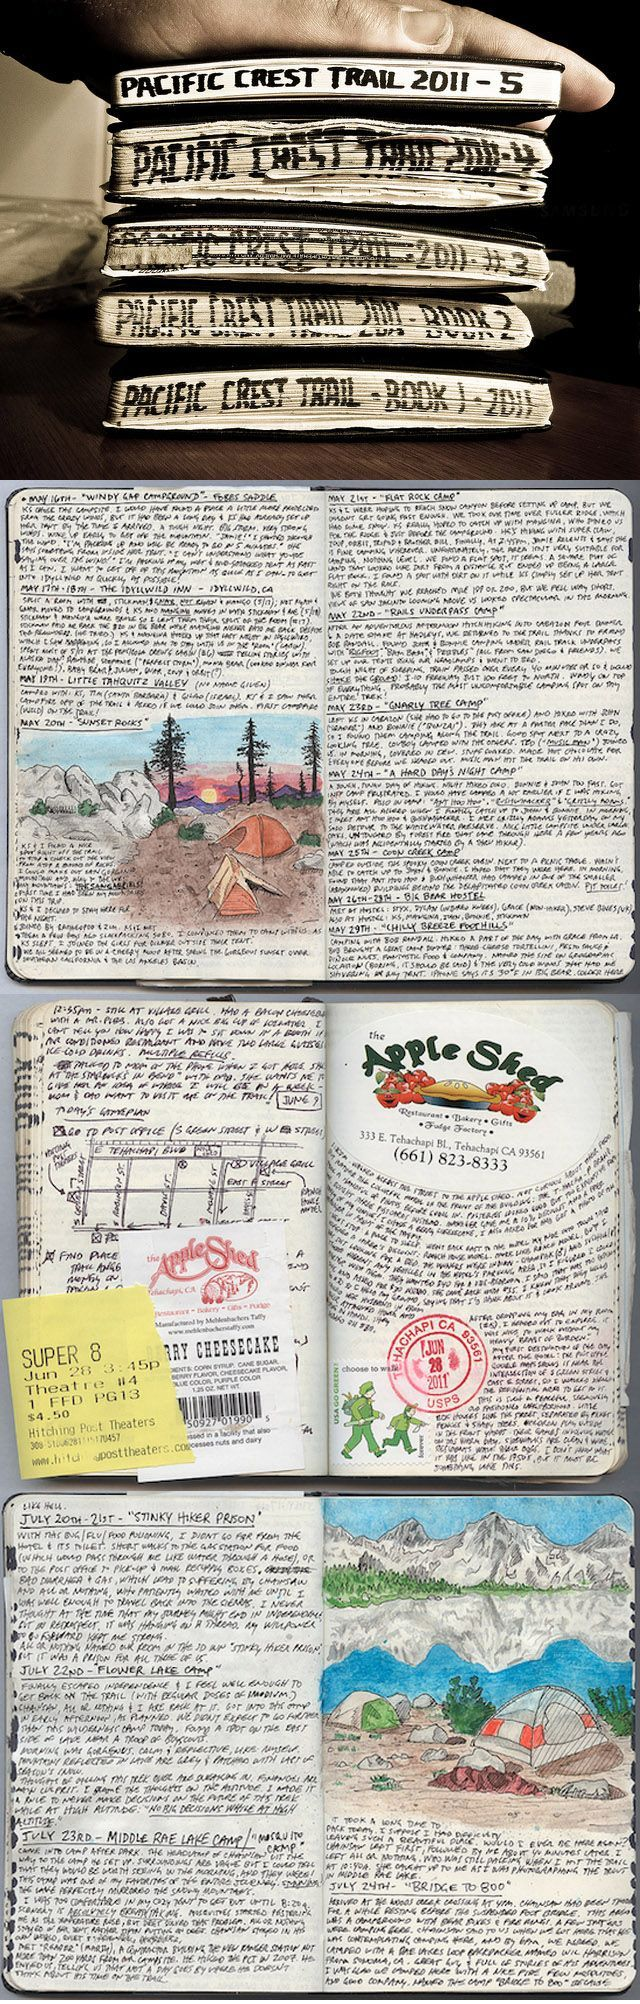 After being laid off from his job in April 2011, Kolby Kirk (The Hike Guy) decided he would attempt to complete as much as he could of the 2,650-mile Pacific Crest Trail. In that time, Kolby wrote 850 pages in his journals, a few of which he has scanned for a major dose of visual stimulation. The pages are filled with charts, receipts, beer labels, stamps, dried botanicals, & sketches. See his Flickr photostream ~ https://www.flickr.com/photos/kahunna/